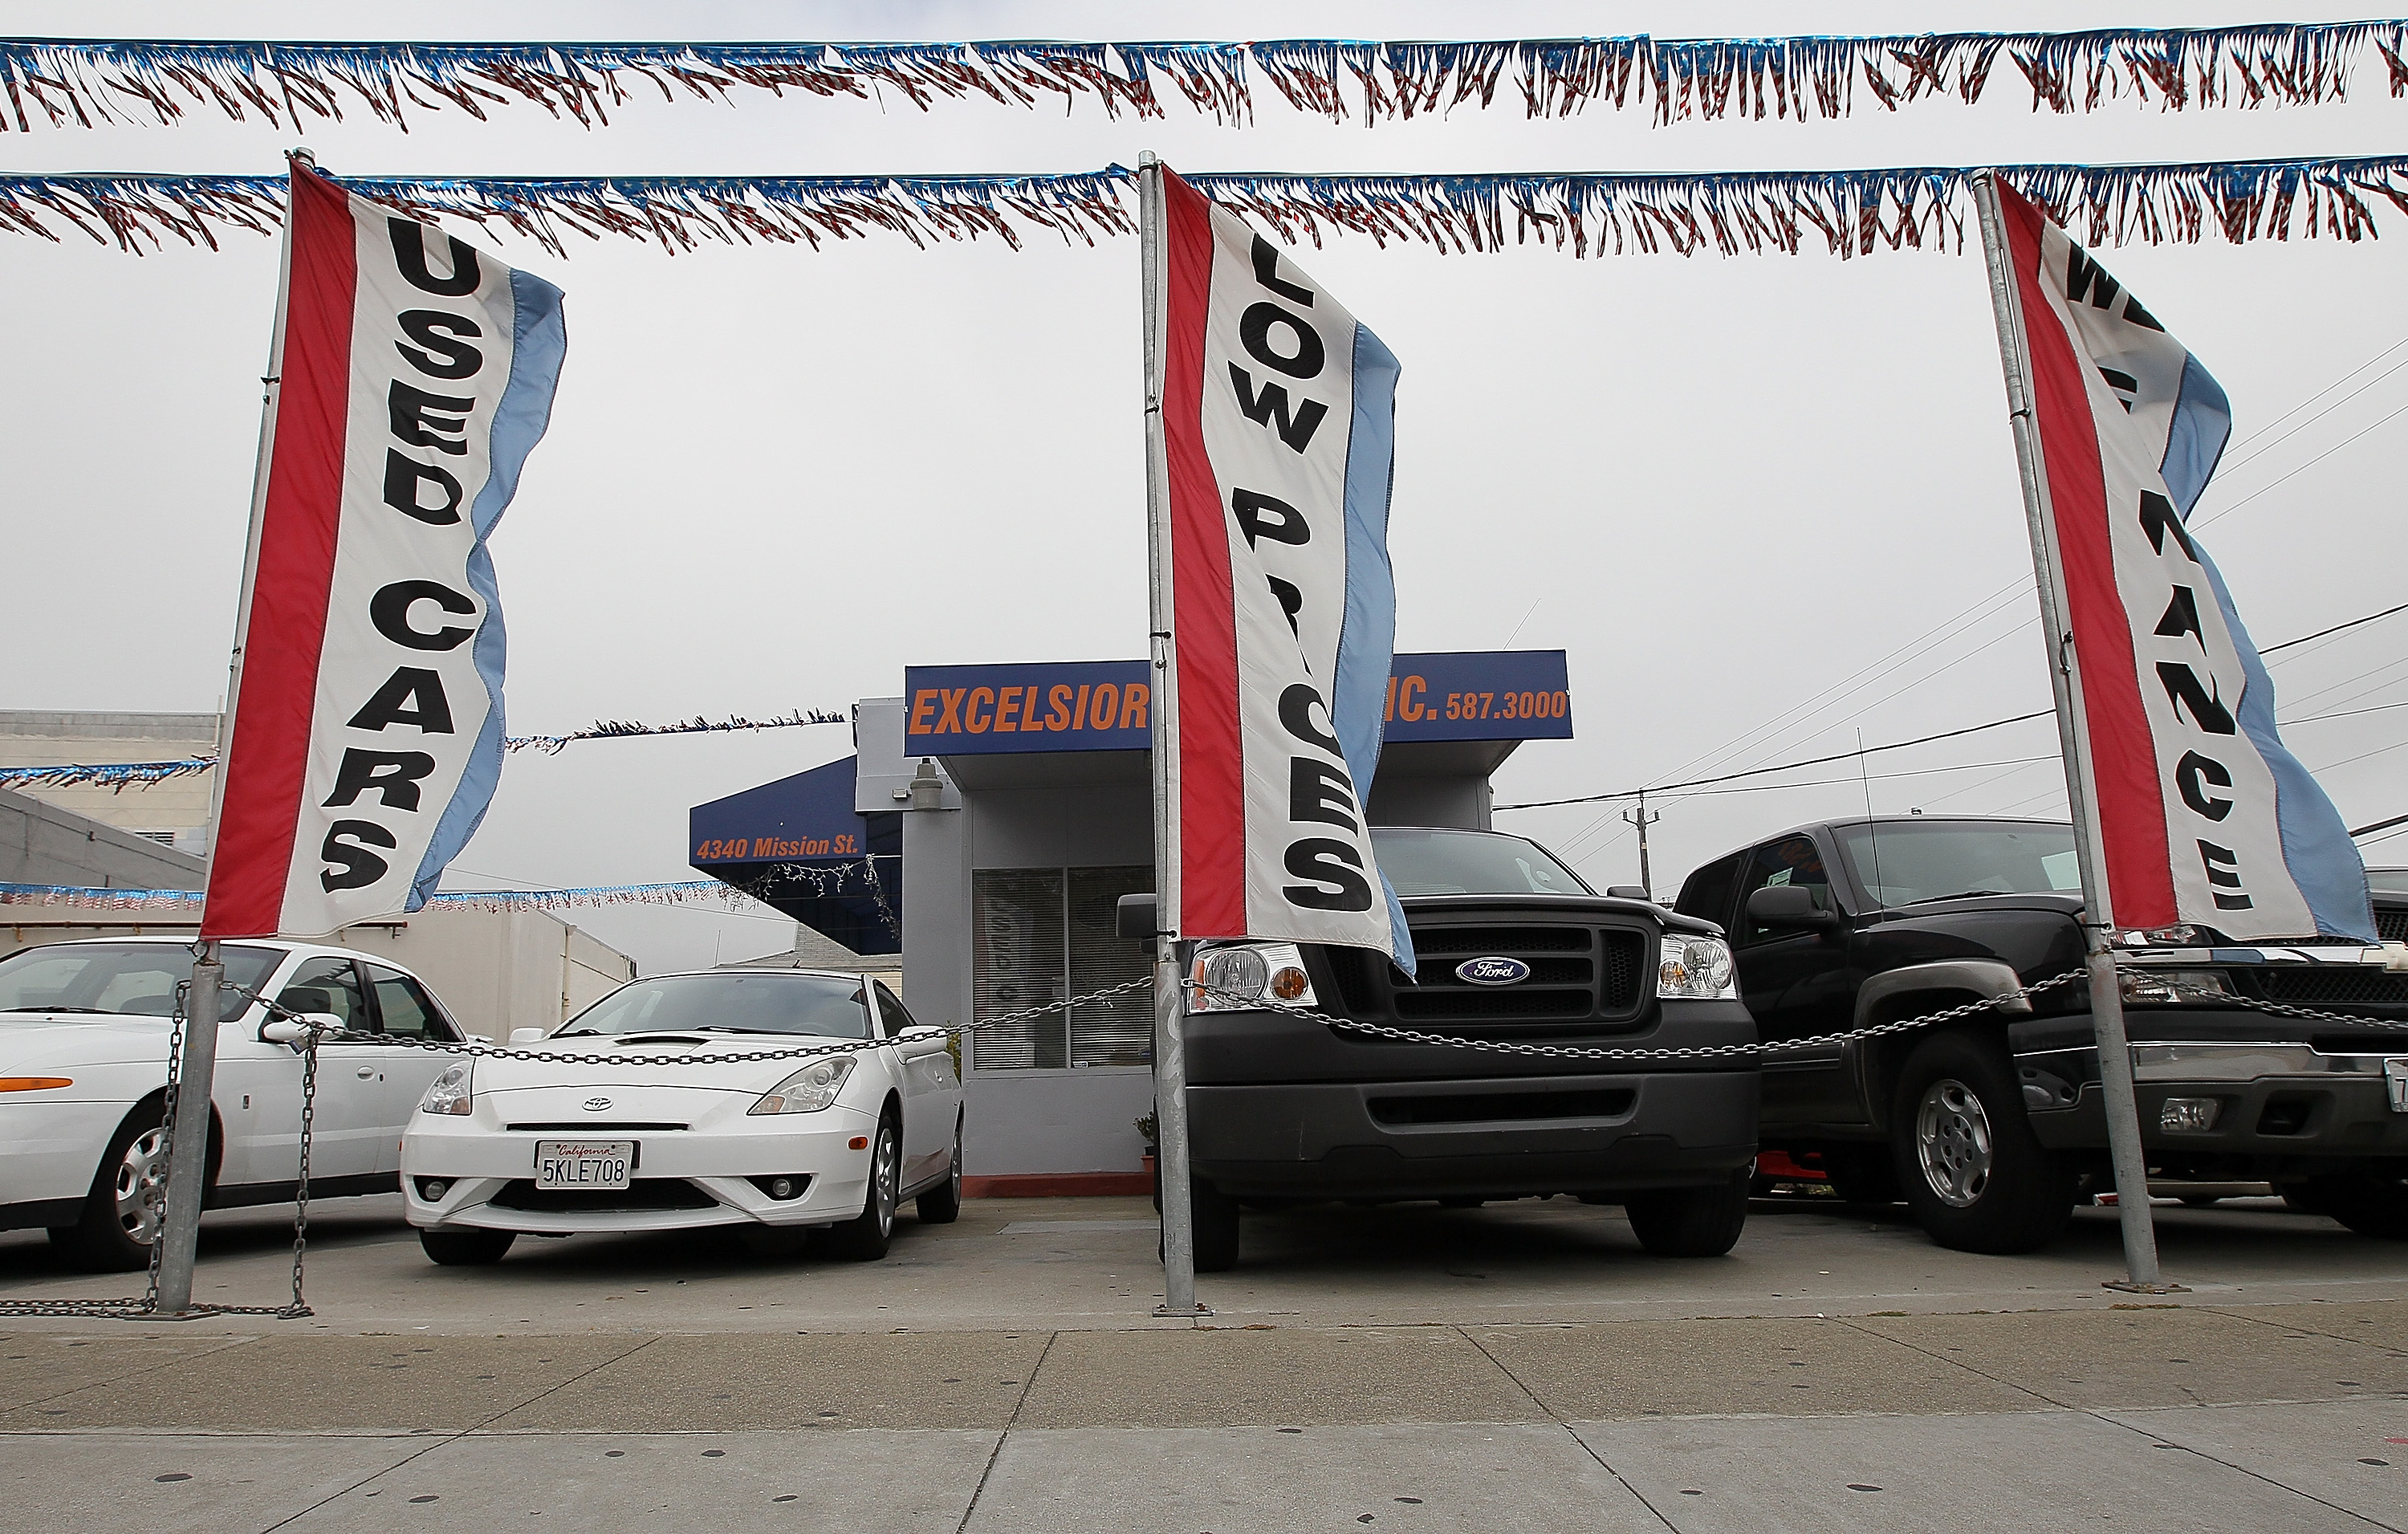 used cars are displayed on a sales lot on june 9 2011 in san francisco